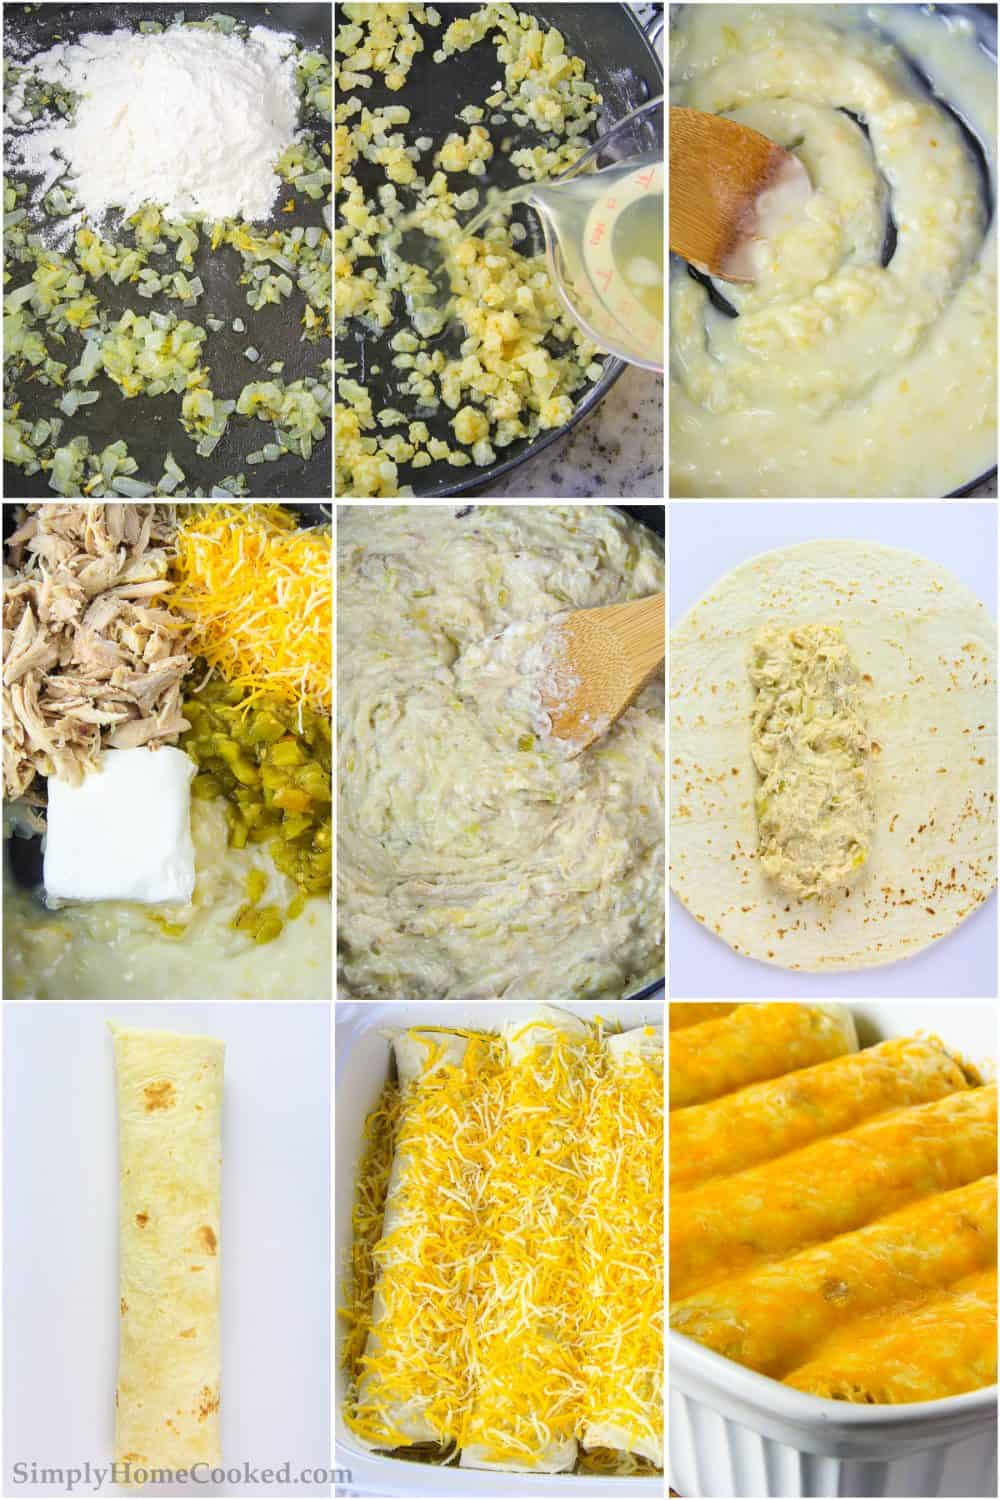 Collage of pictures showing the step by step process of making the cheesy chicken tortillas mixture, rolling, and baking them.